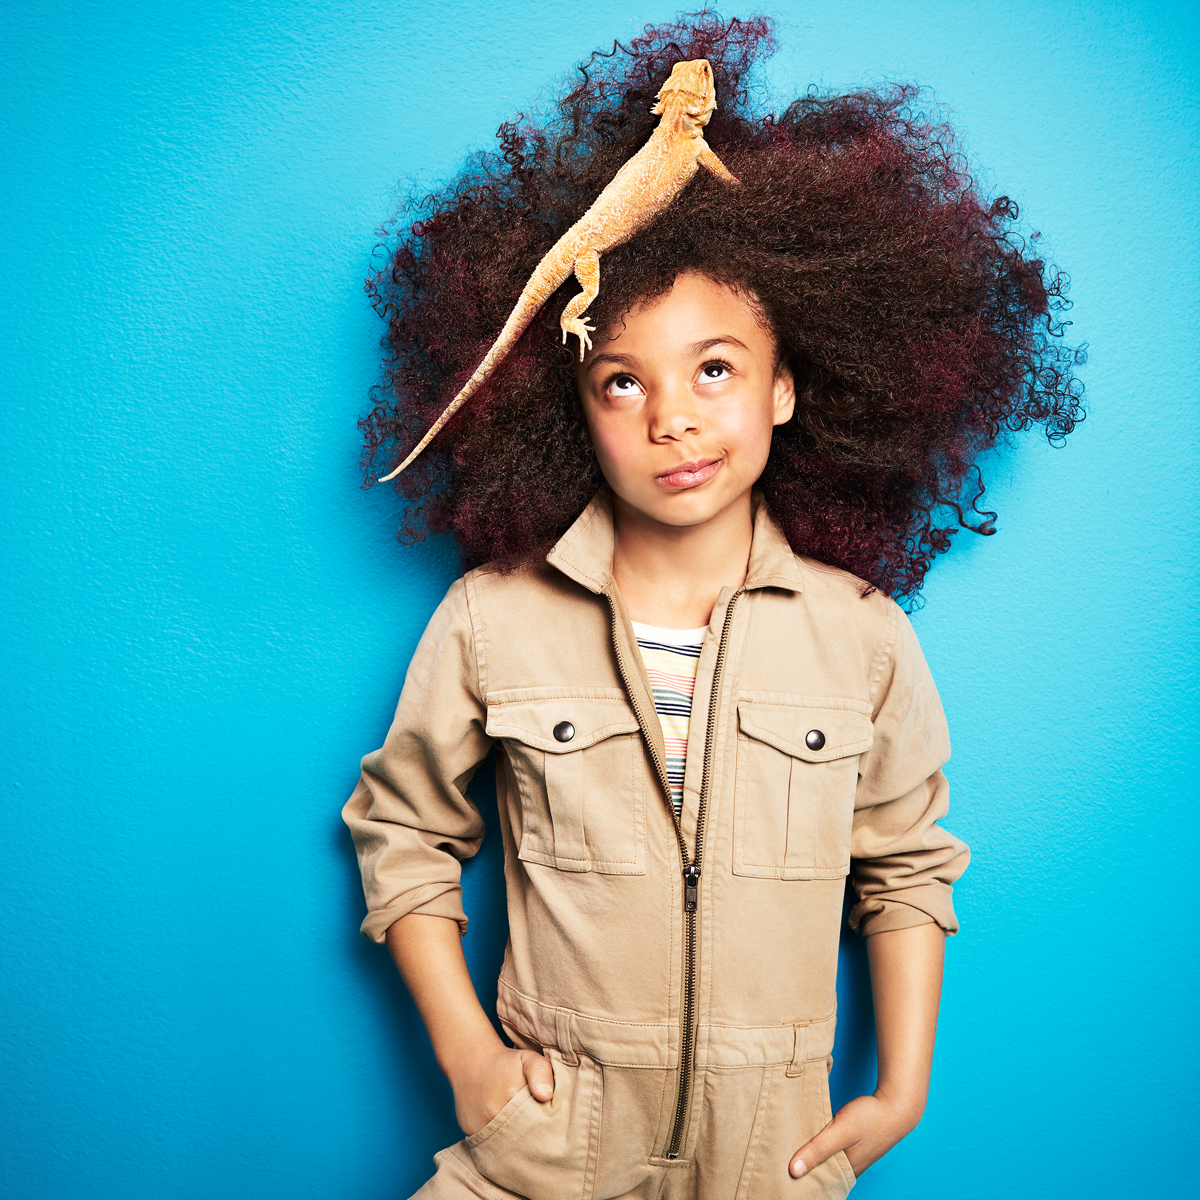 girl wearing jumpsuit with bearded dragon in her hair